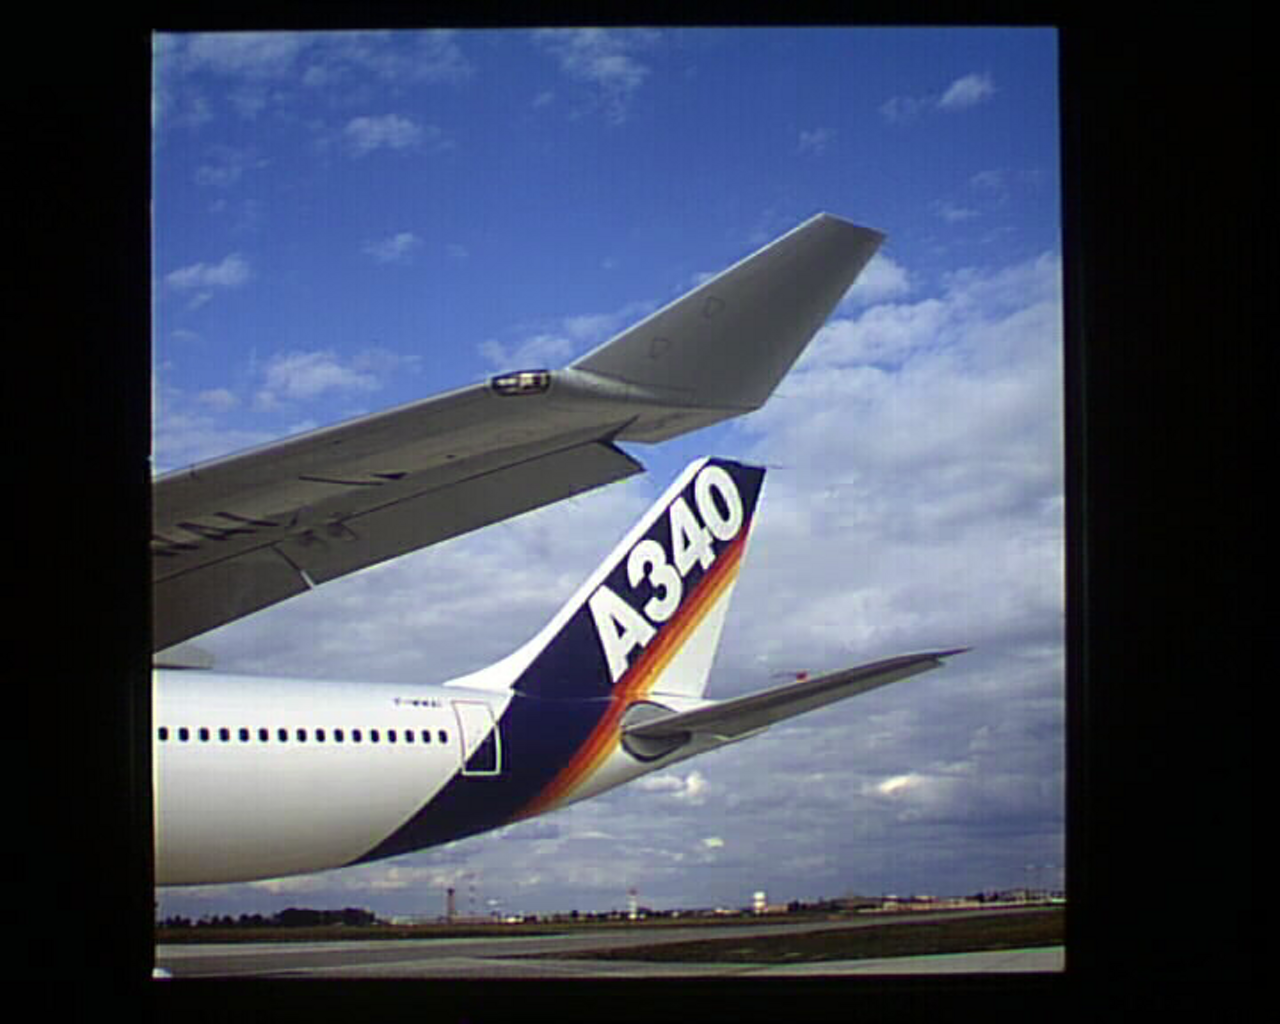 A340 300 Tail And Wing Tip